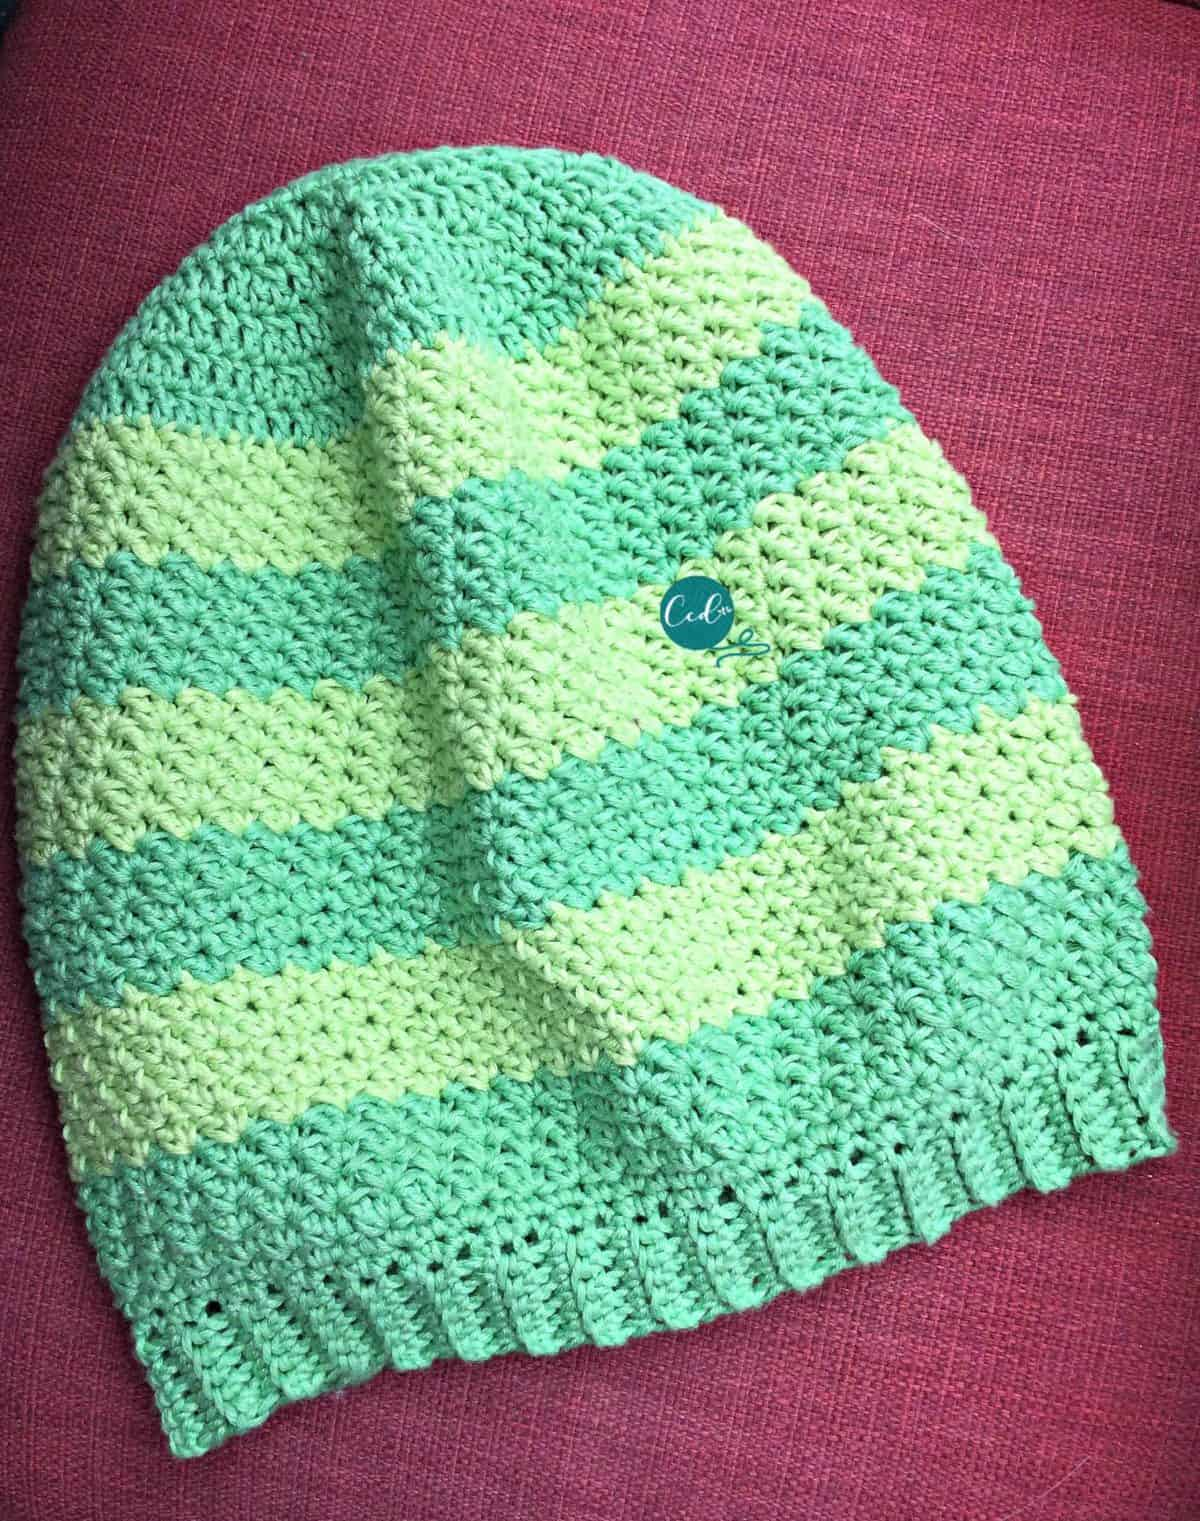 Complete striped slouchy hat.